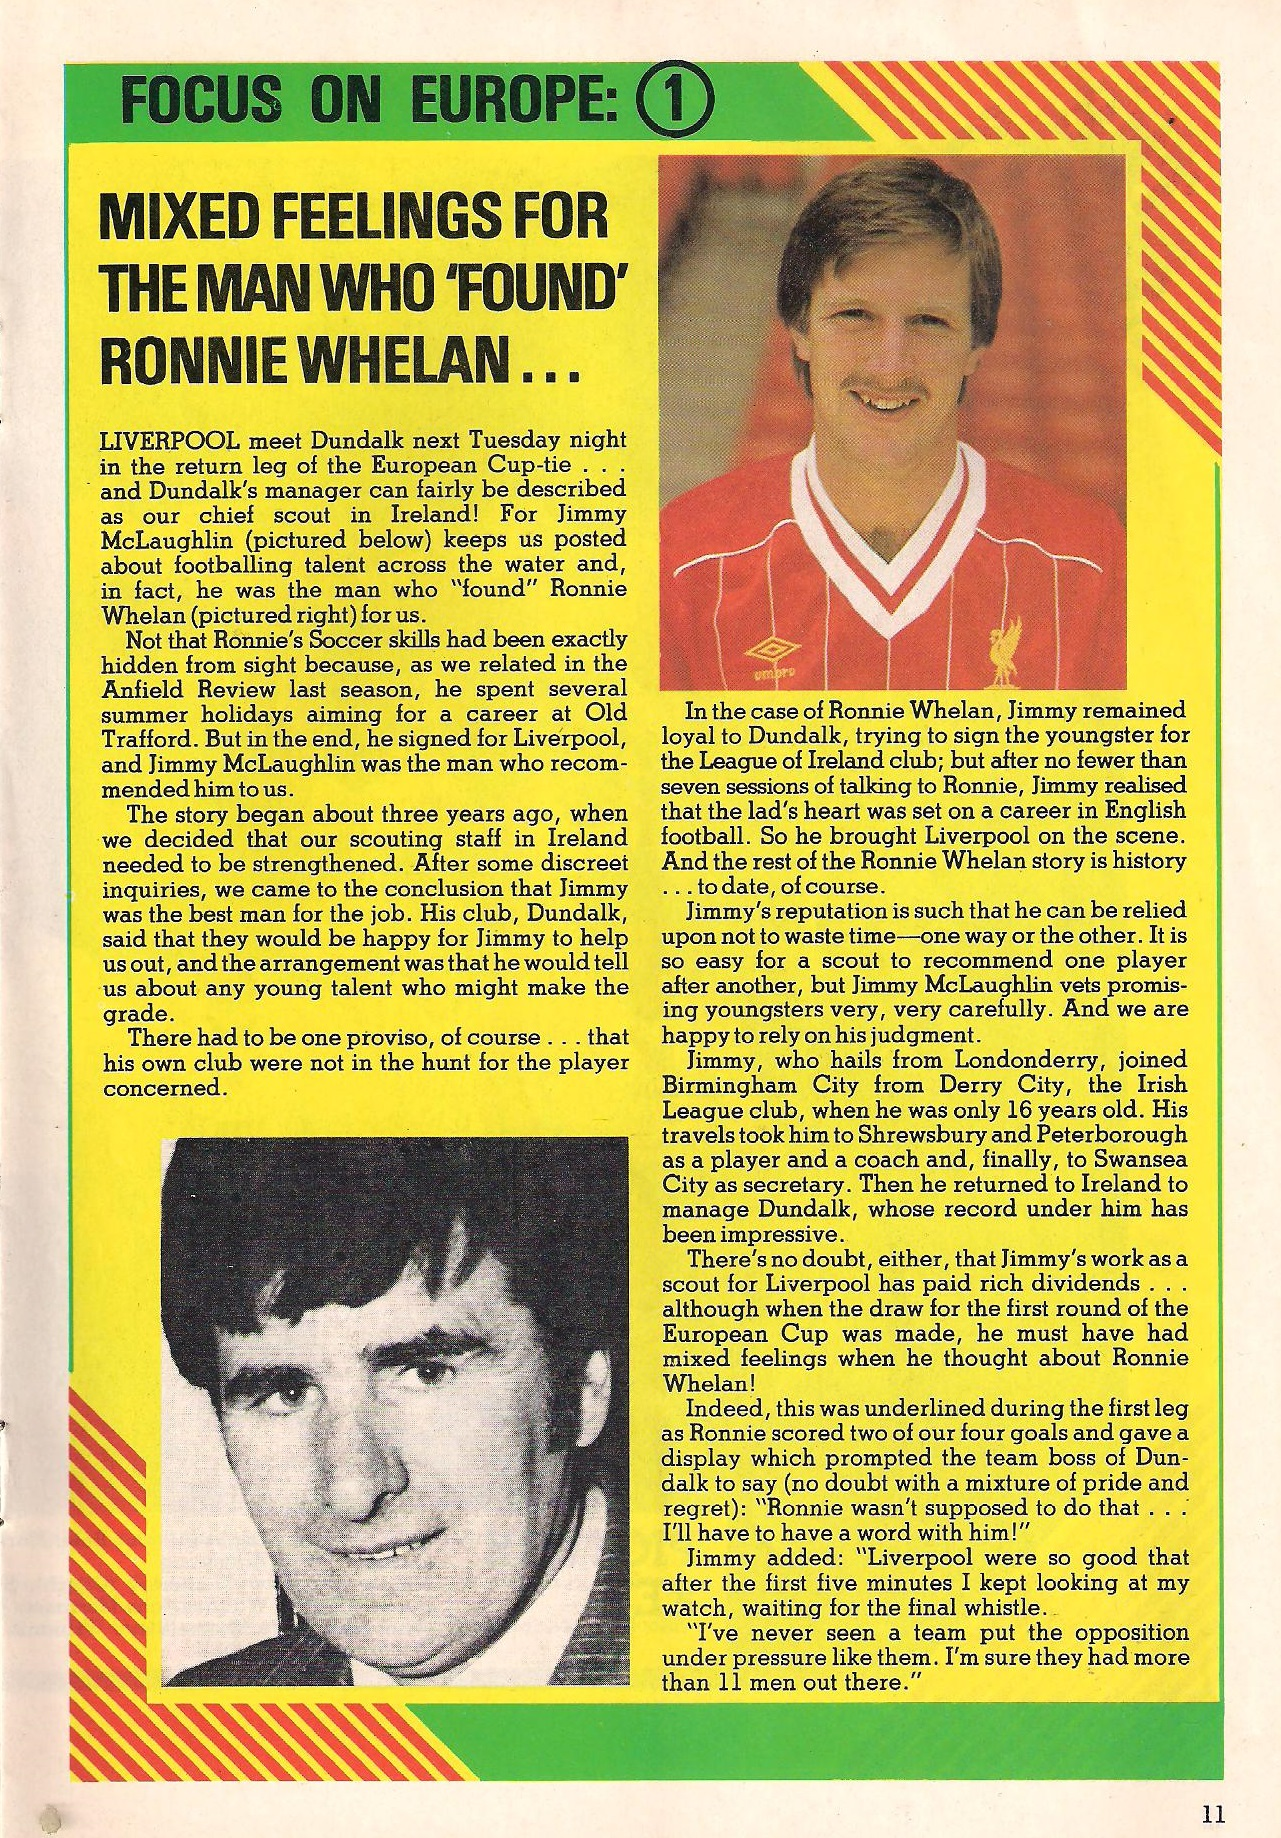 Mixed feelings for the scout who found Ronnie Whelan - LFC match programme 1982